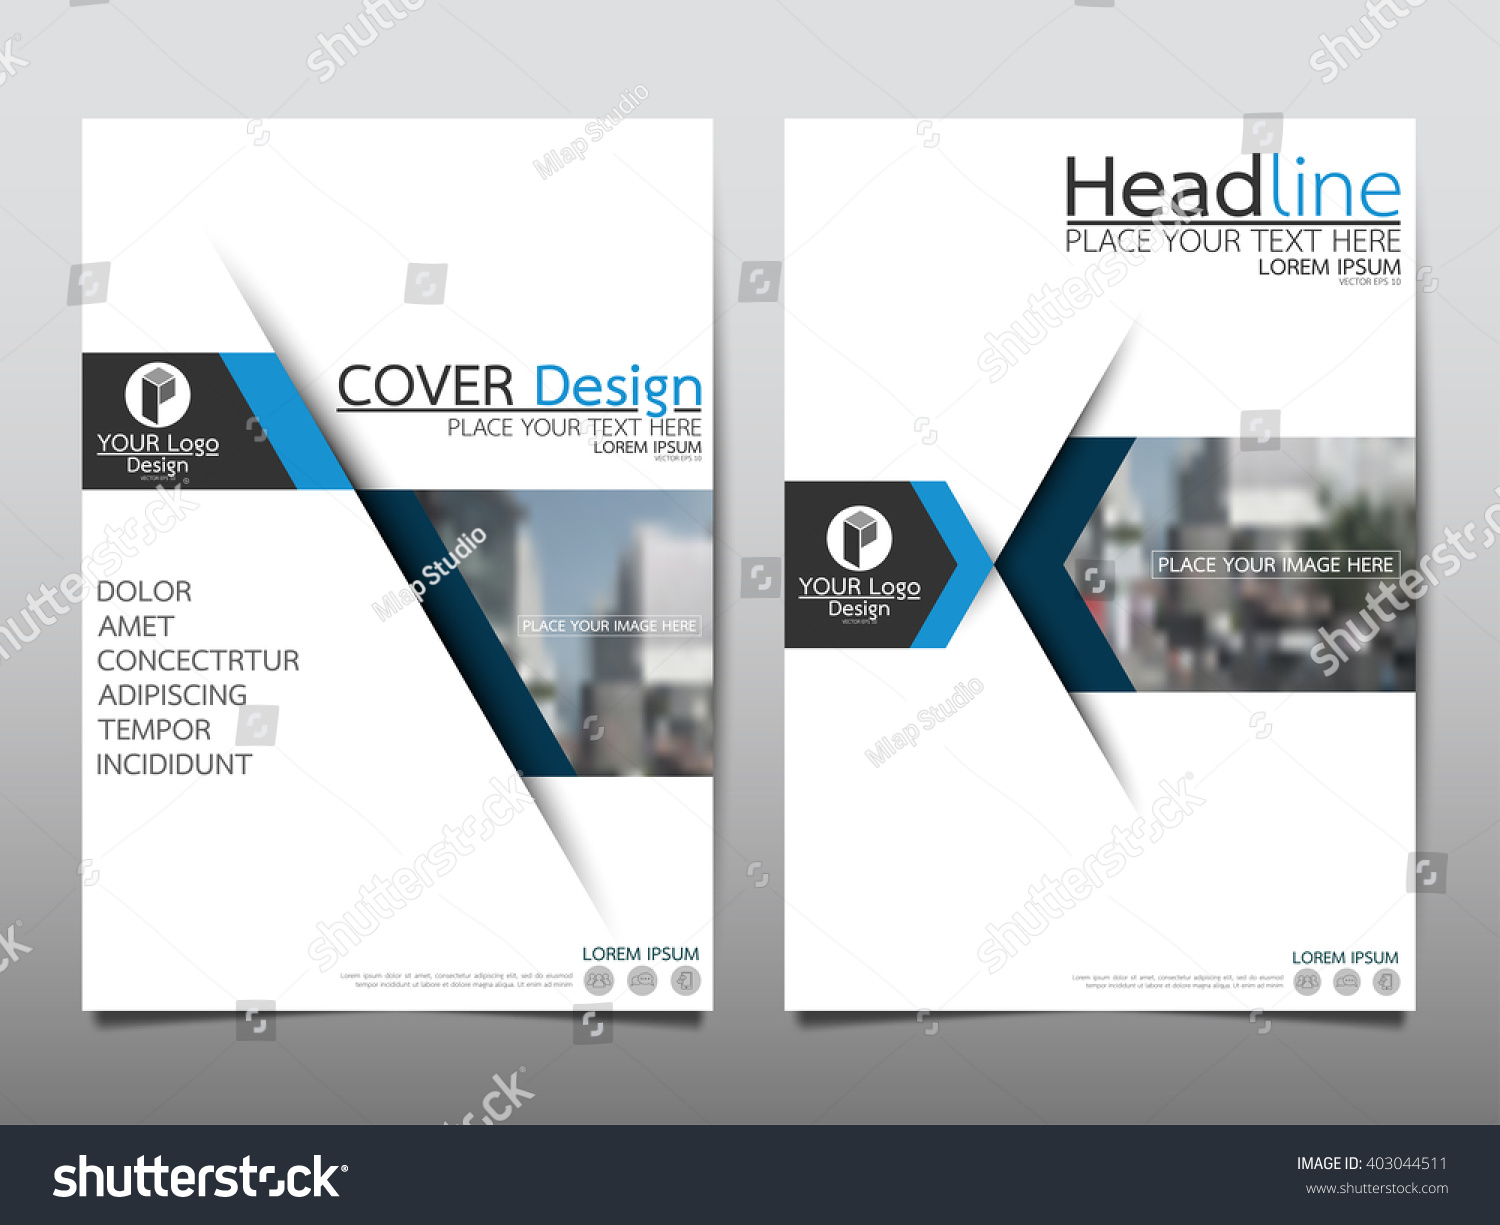 royalty blue annual report brochure flyer stock blue annual report brochure flyer design template vector leaflet cover presentation abstract flat background